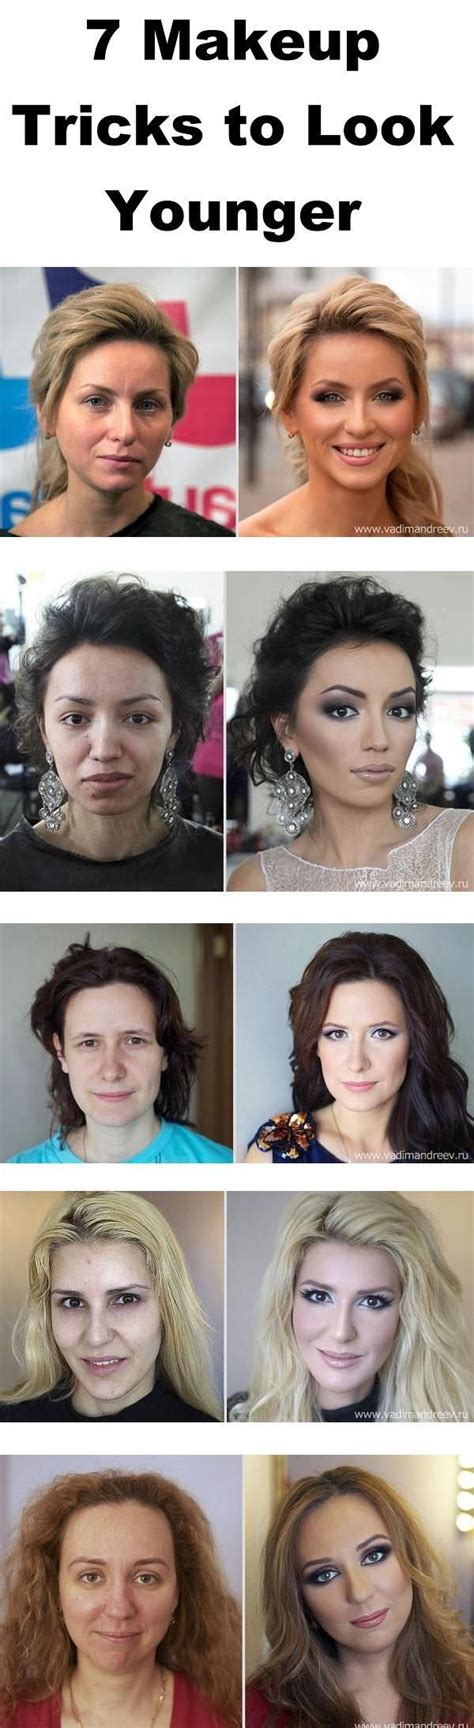 Top 7 Makeup Tricks For Winter by 7 Makeup Tricks To Look Younger Fashion Daily